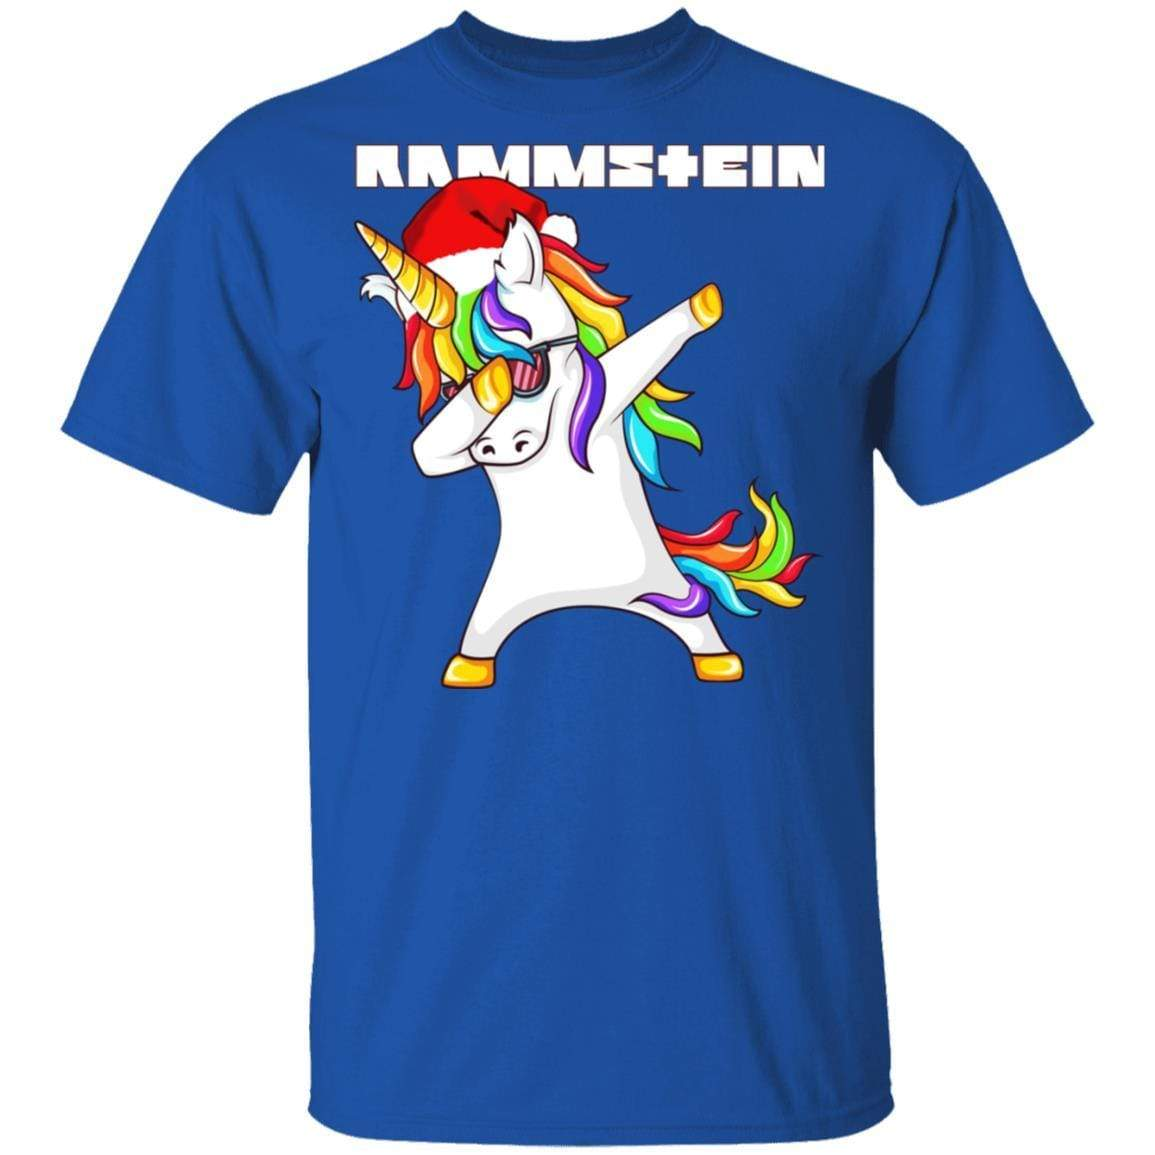 Rammstein Dabbing Unicorn Version T-Shirts, Hoodies 1049-9971-88254696-48286 - Tee Ript